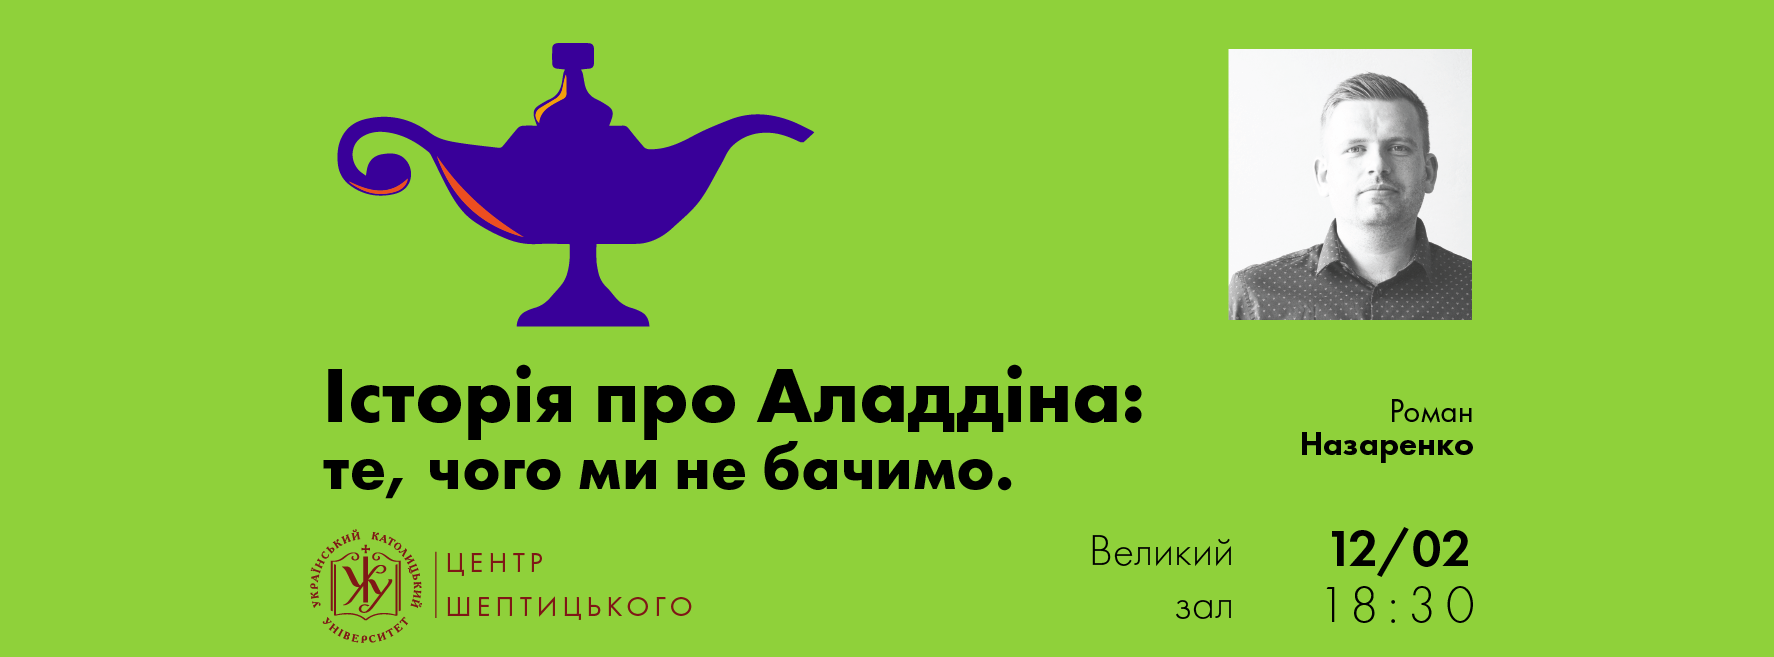 """Lecture by Roman Nazarenko """"The History of Aladdin: What We Don't See"""""""